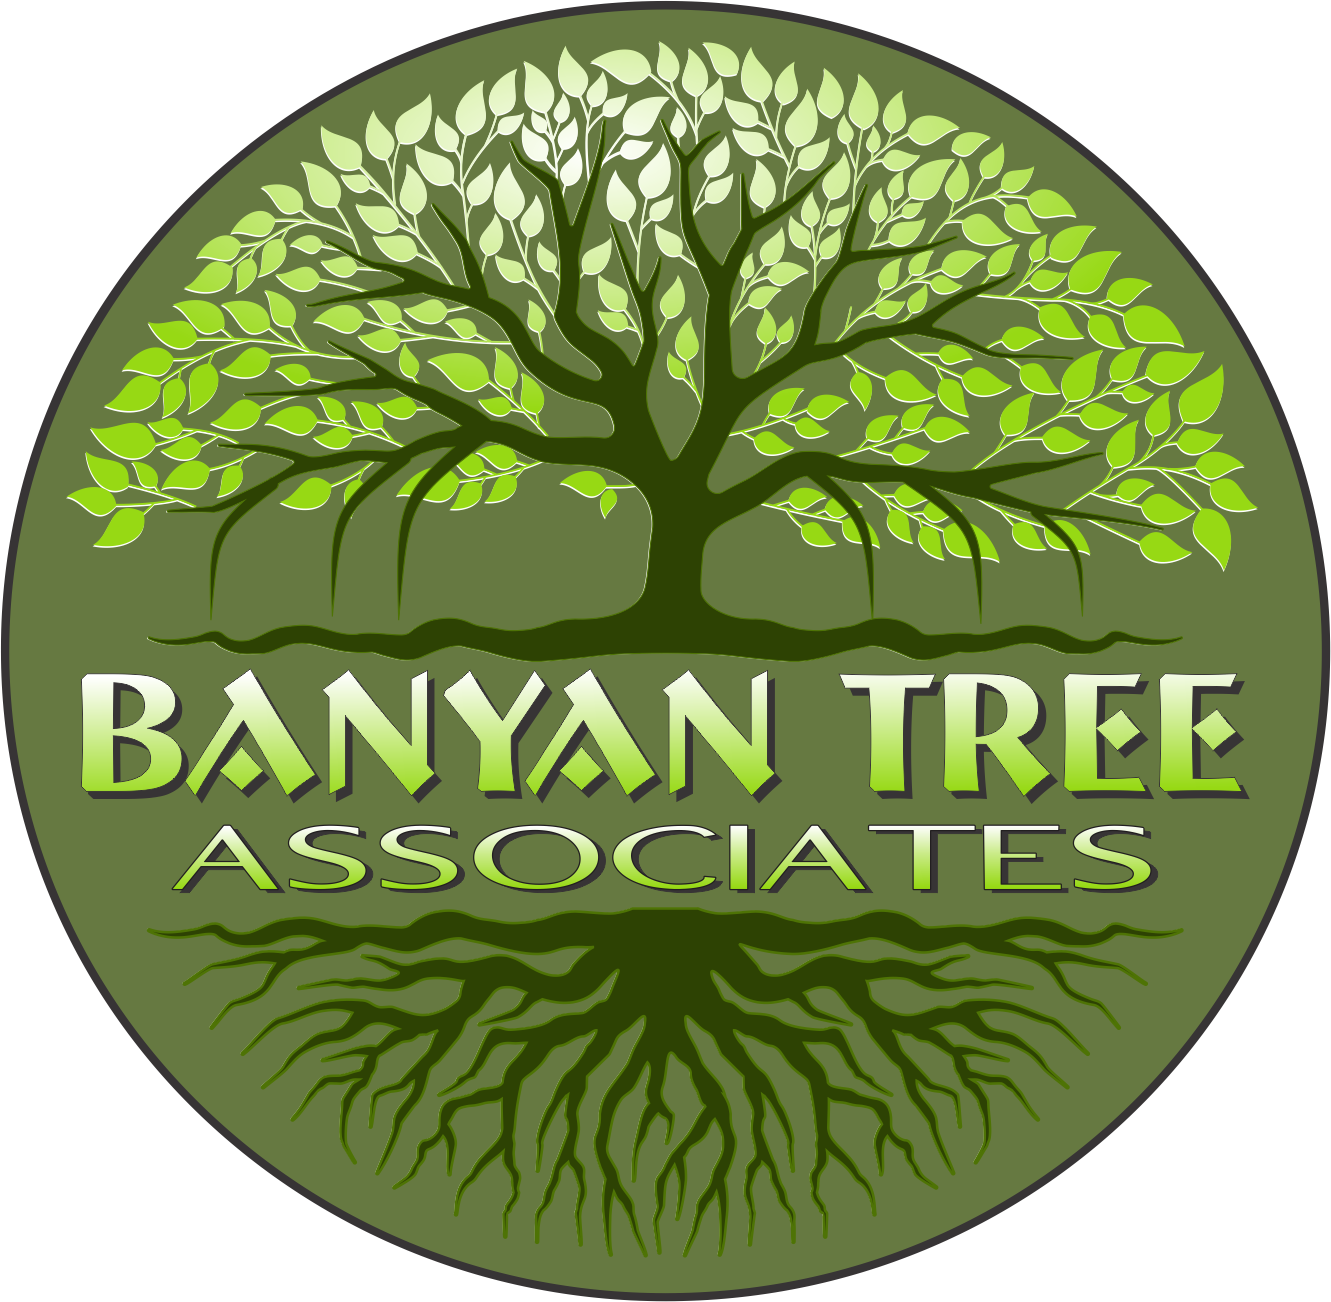 Serious Professional Business Consultant Logo Design For Banyan Tree Associates By Mt Marketing Design 23366833